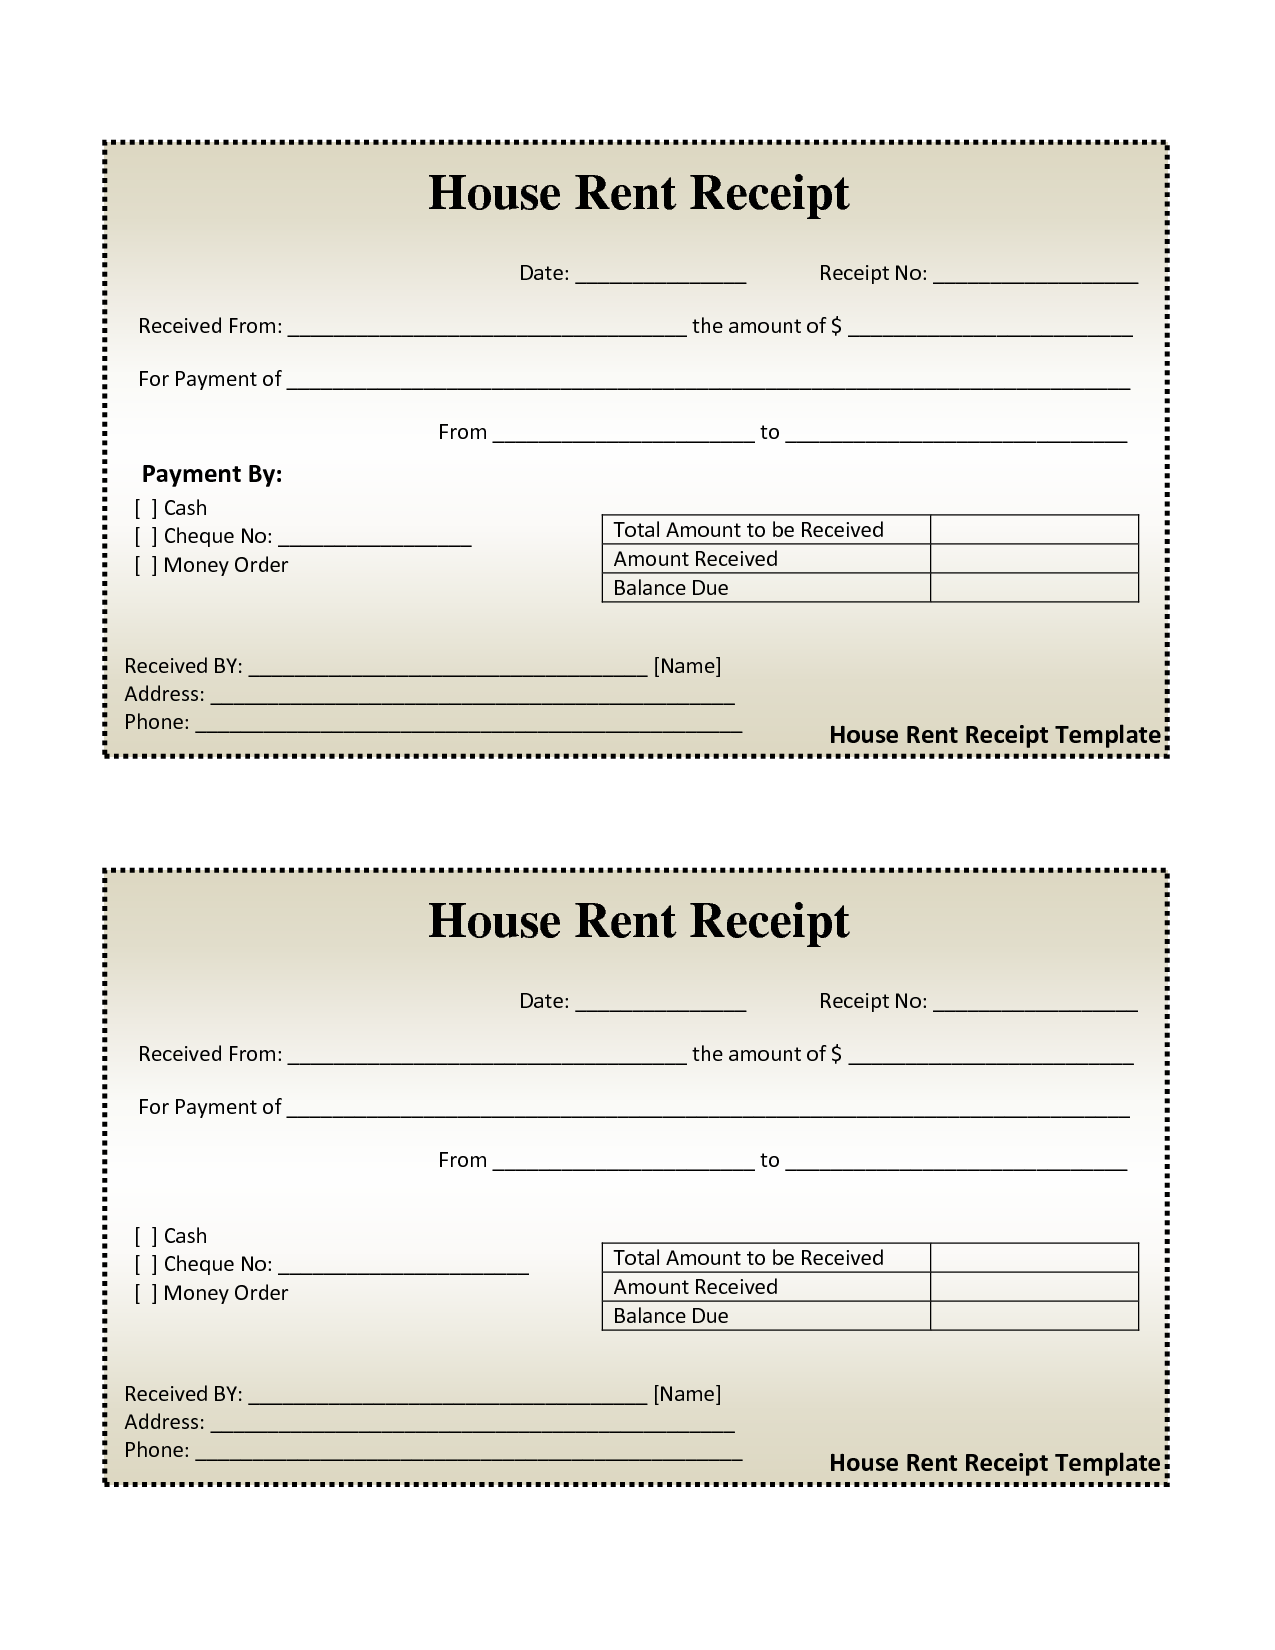 Good Free House Rental Invoice | House Rent Receipt Template   DOC